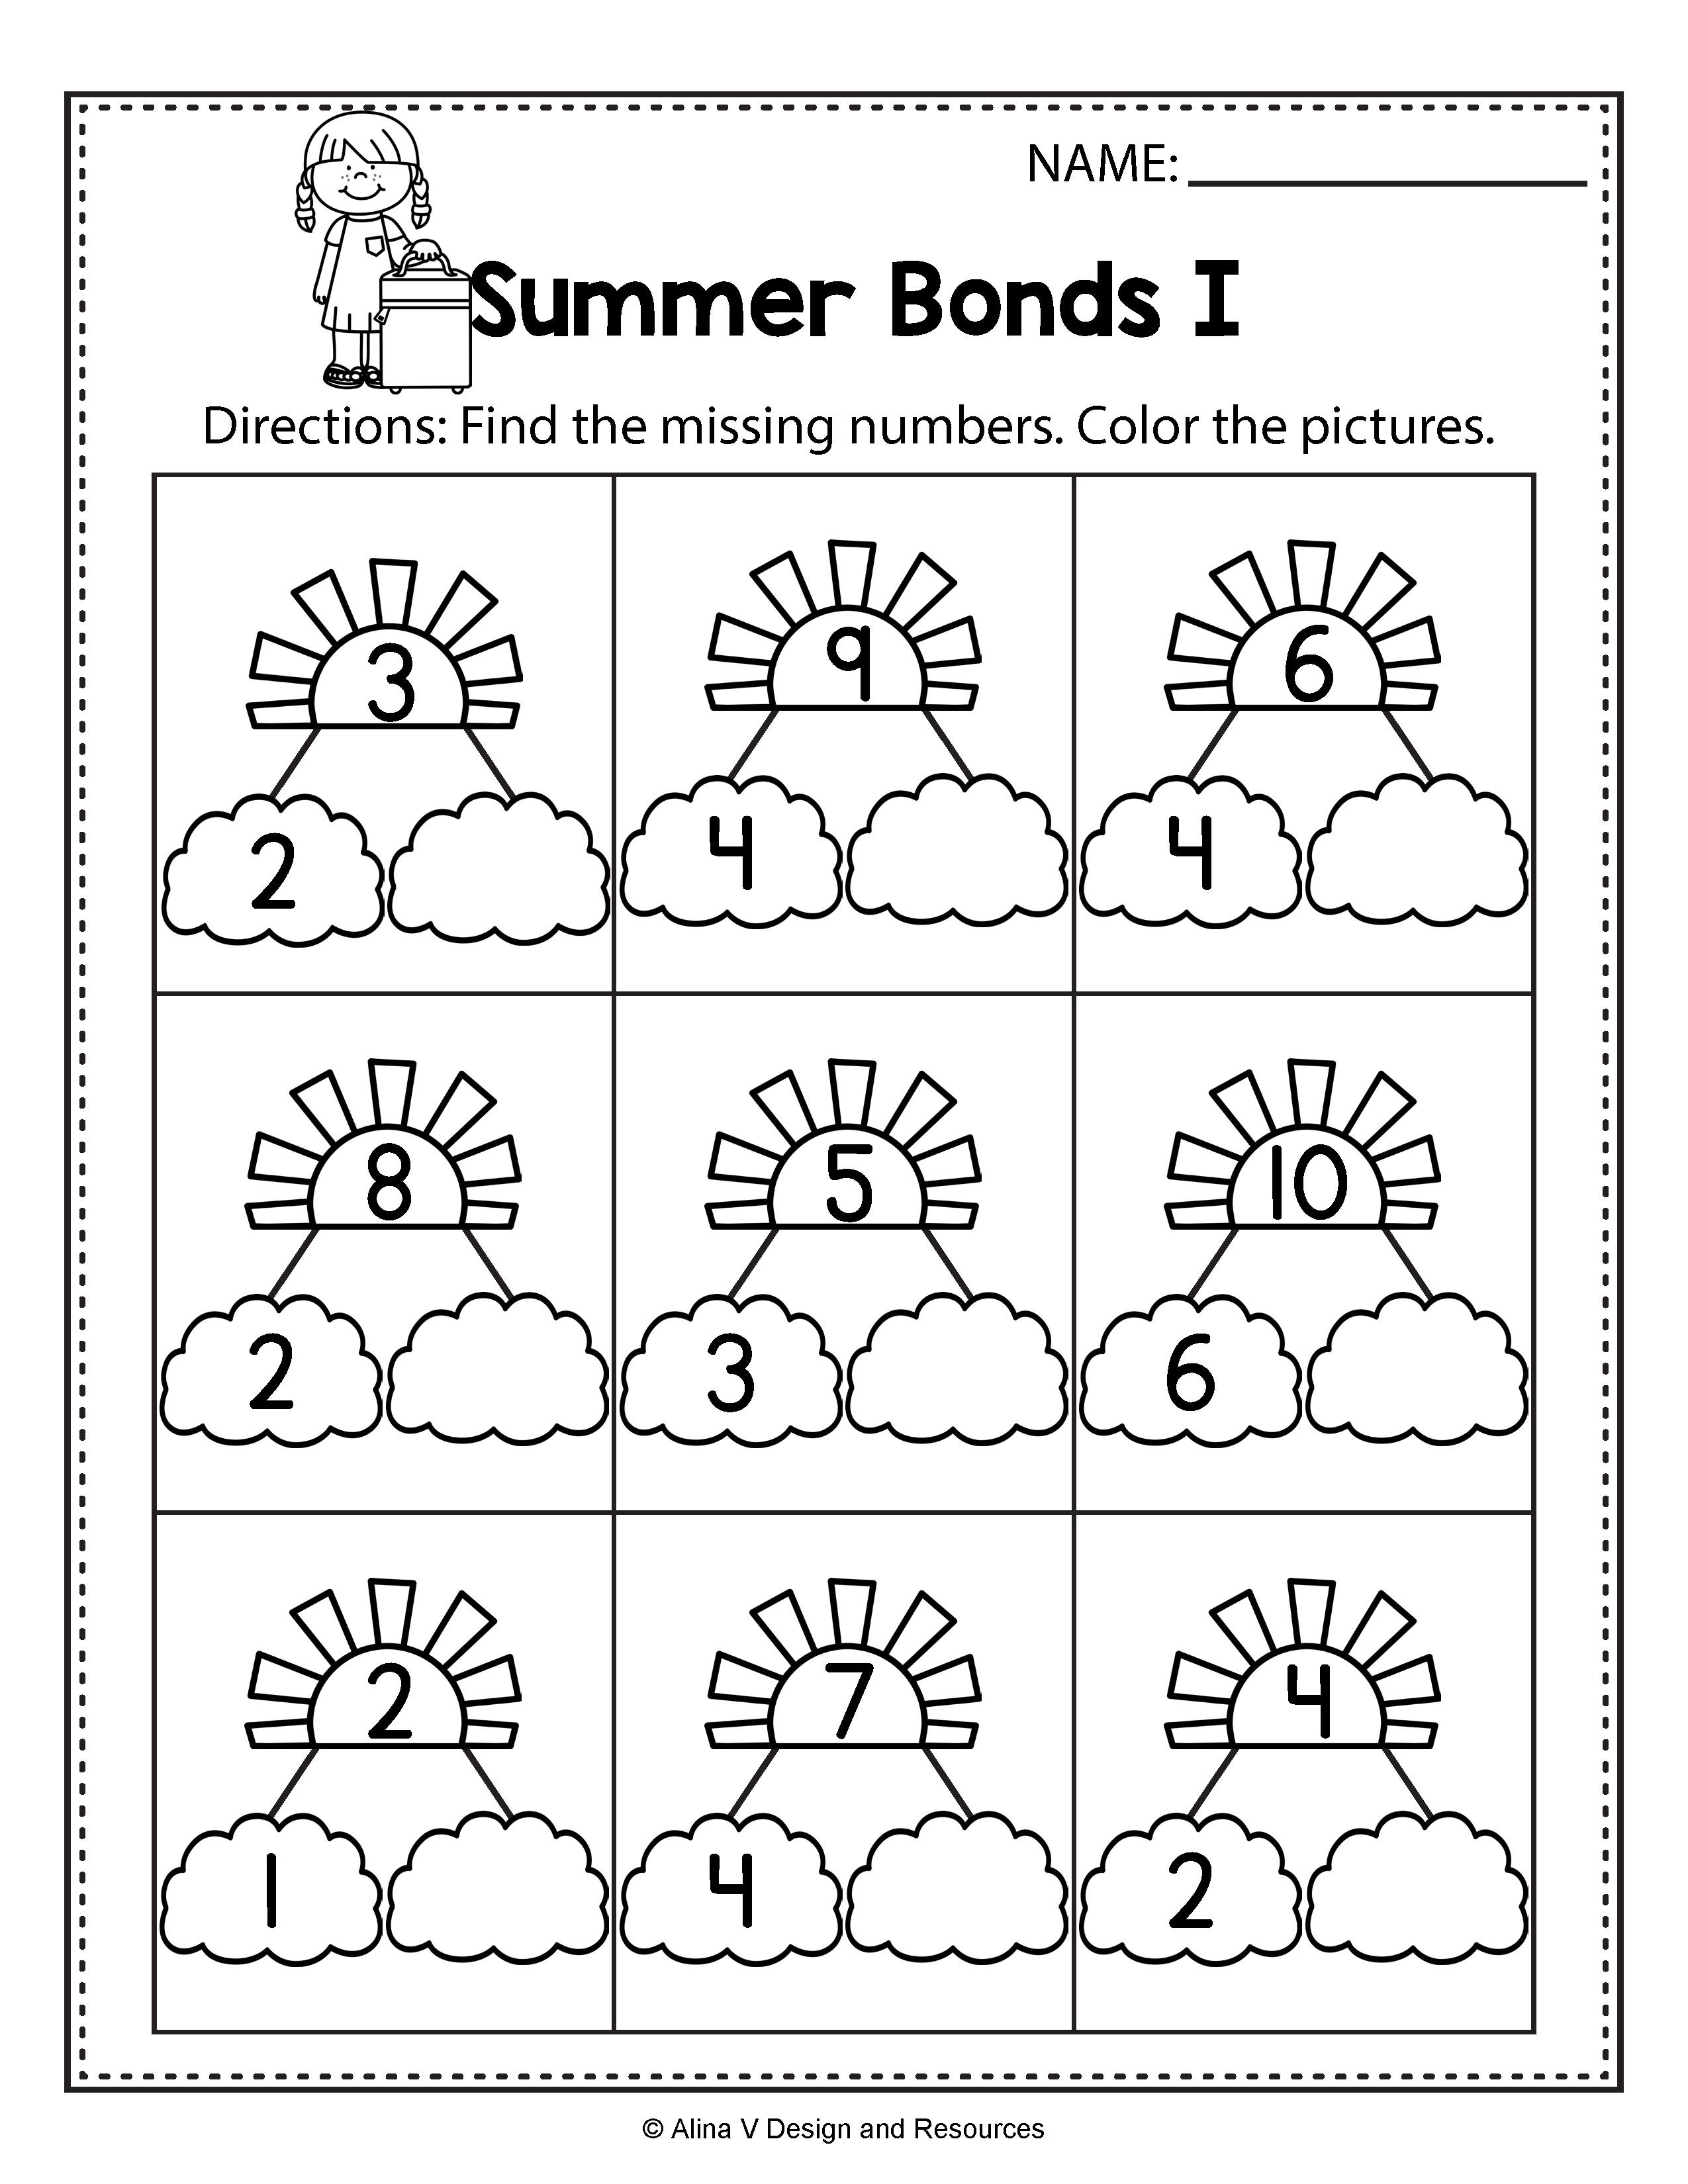 Summer Bonds Write The Missing Numbers